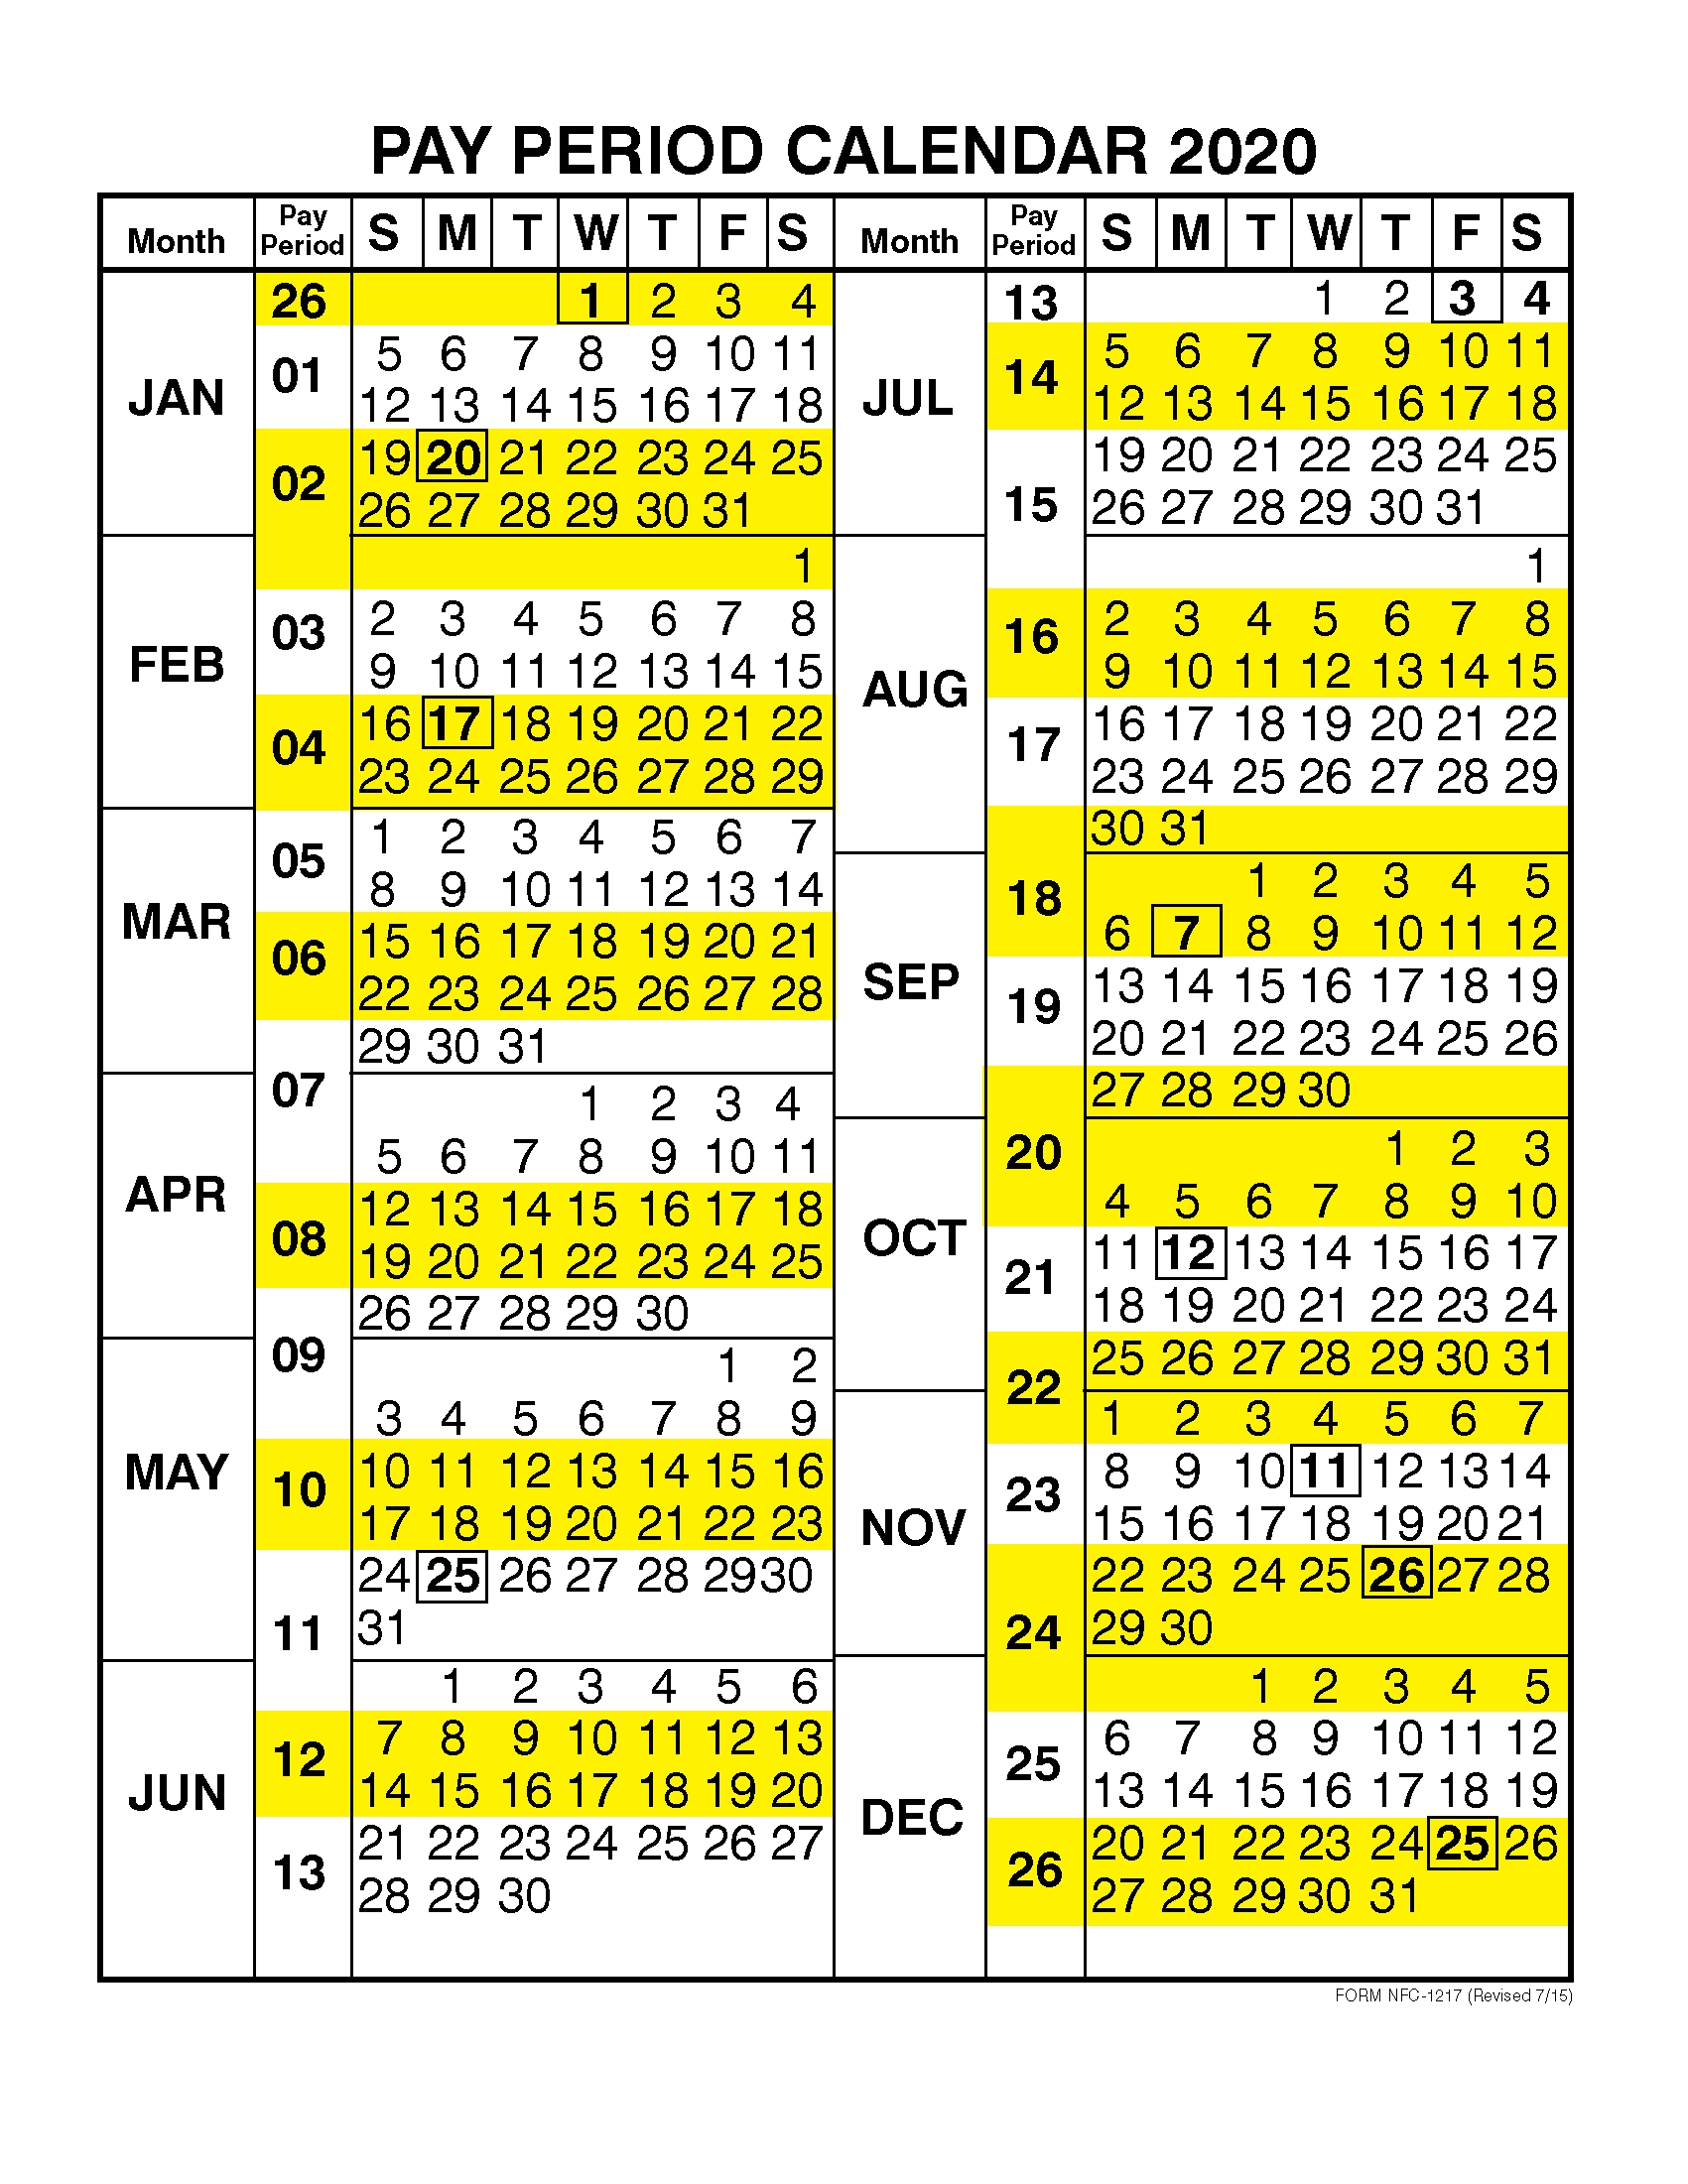 Take Pay Period Calendar Federal 2021